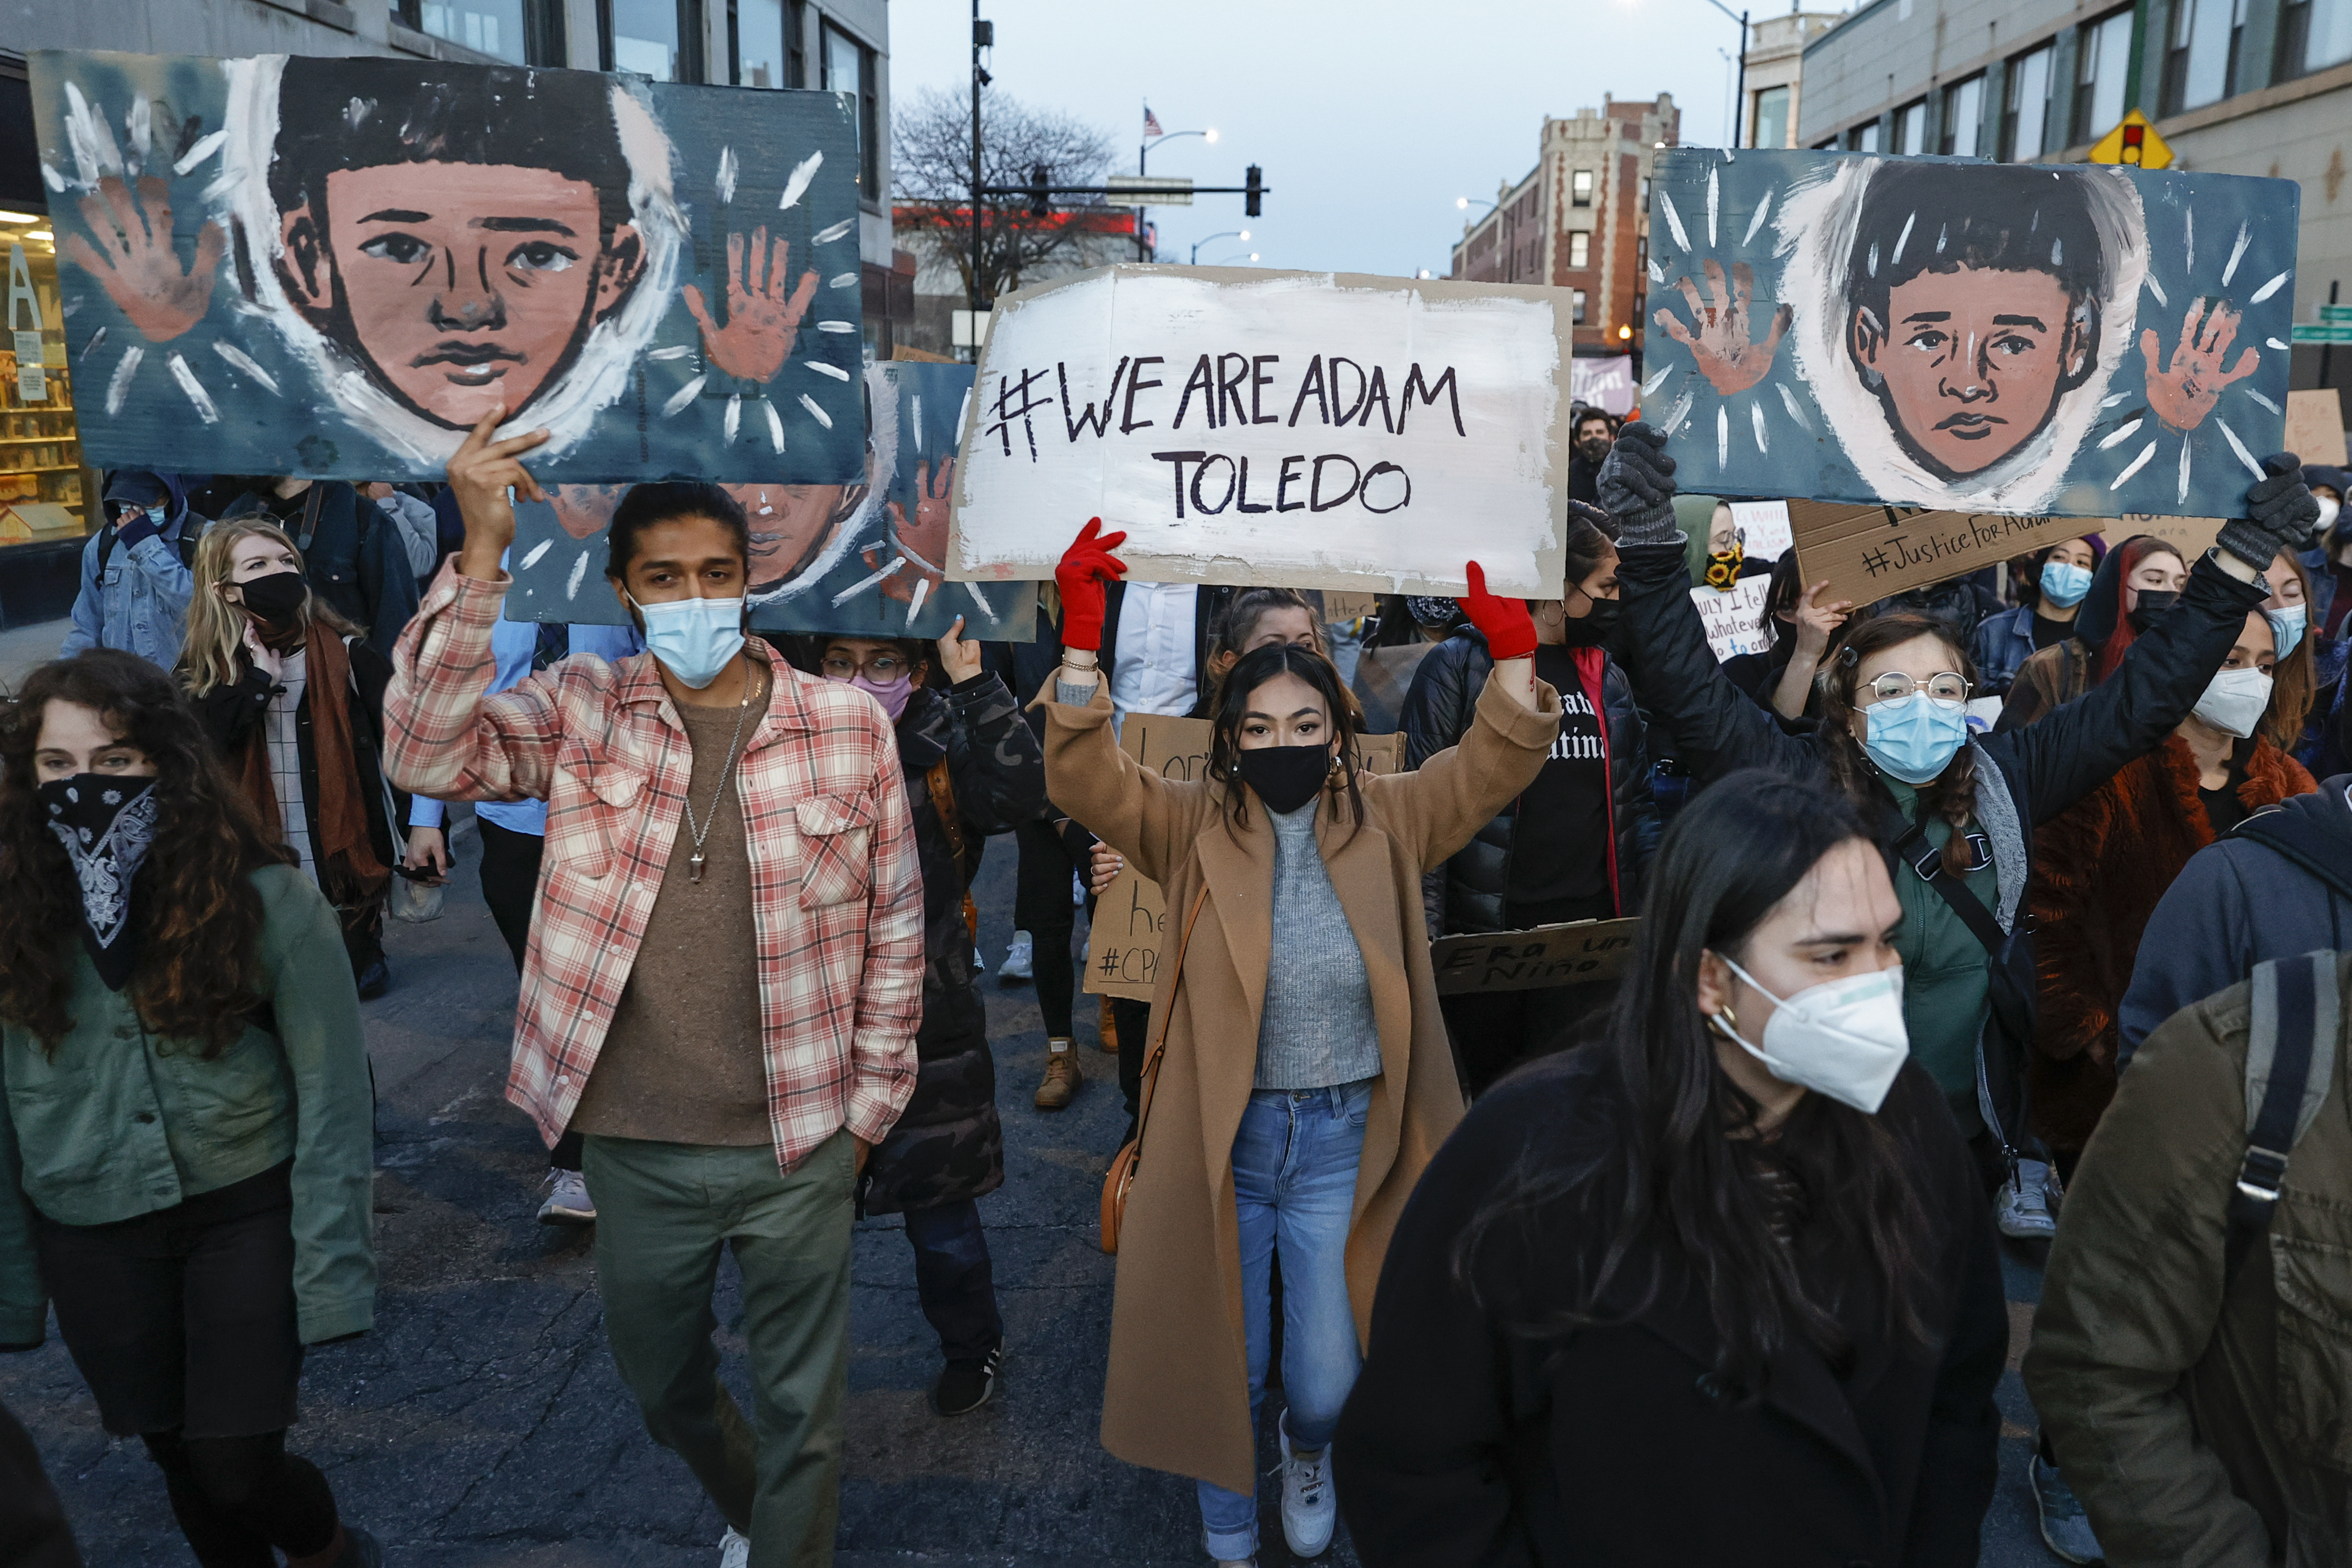 CHICAGO, IL - APRIL 16: Protesters march through Logan Square neighborhood during a rally on April 16, 2021 in Chicago, Illinois. The rally was held to protest the killing of 13-year-old Adam Toledo by a Chicago Police officer on March 29th. The video of the fatal shooting was released on Thursday to the general public by the Civilian Office of Police Accountability more than two weeks after the incident took place. (Photo by Kamil Krzaczynski/Getty Images)